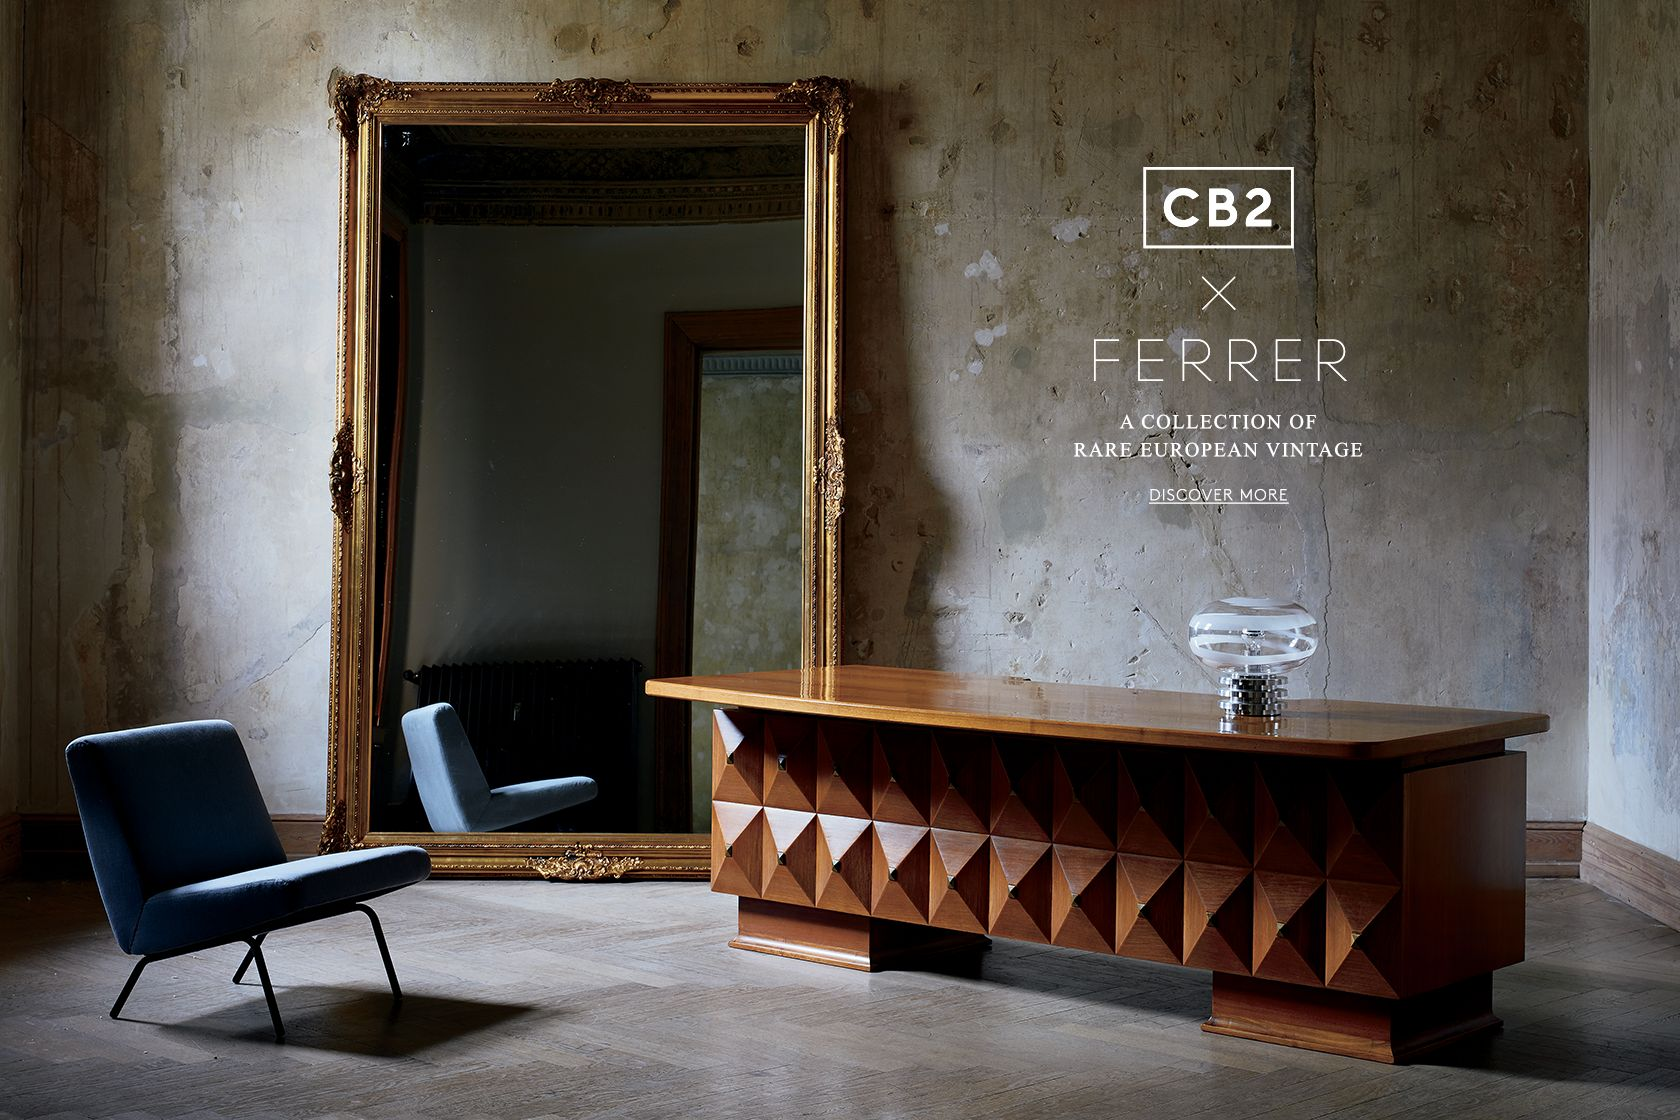 Ferrer x cb2 a collection of rare european vintage